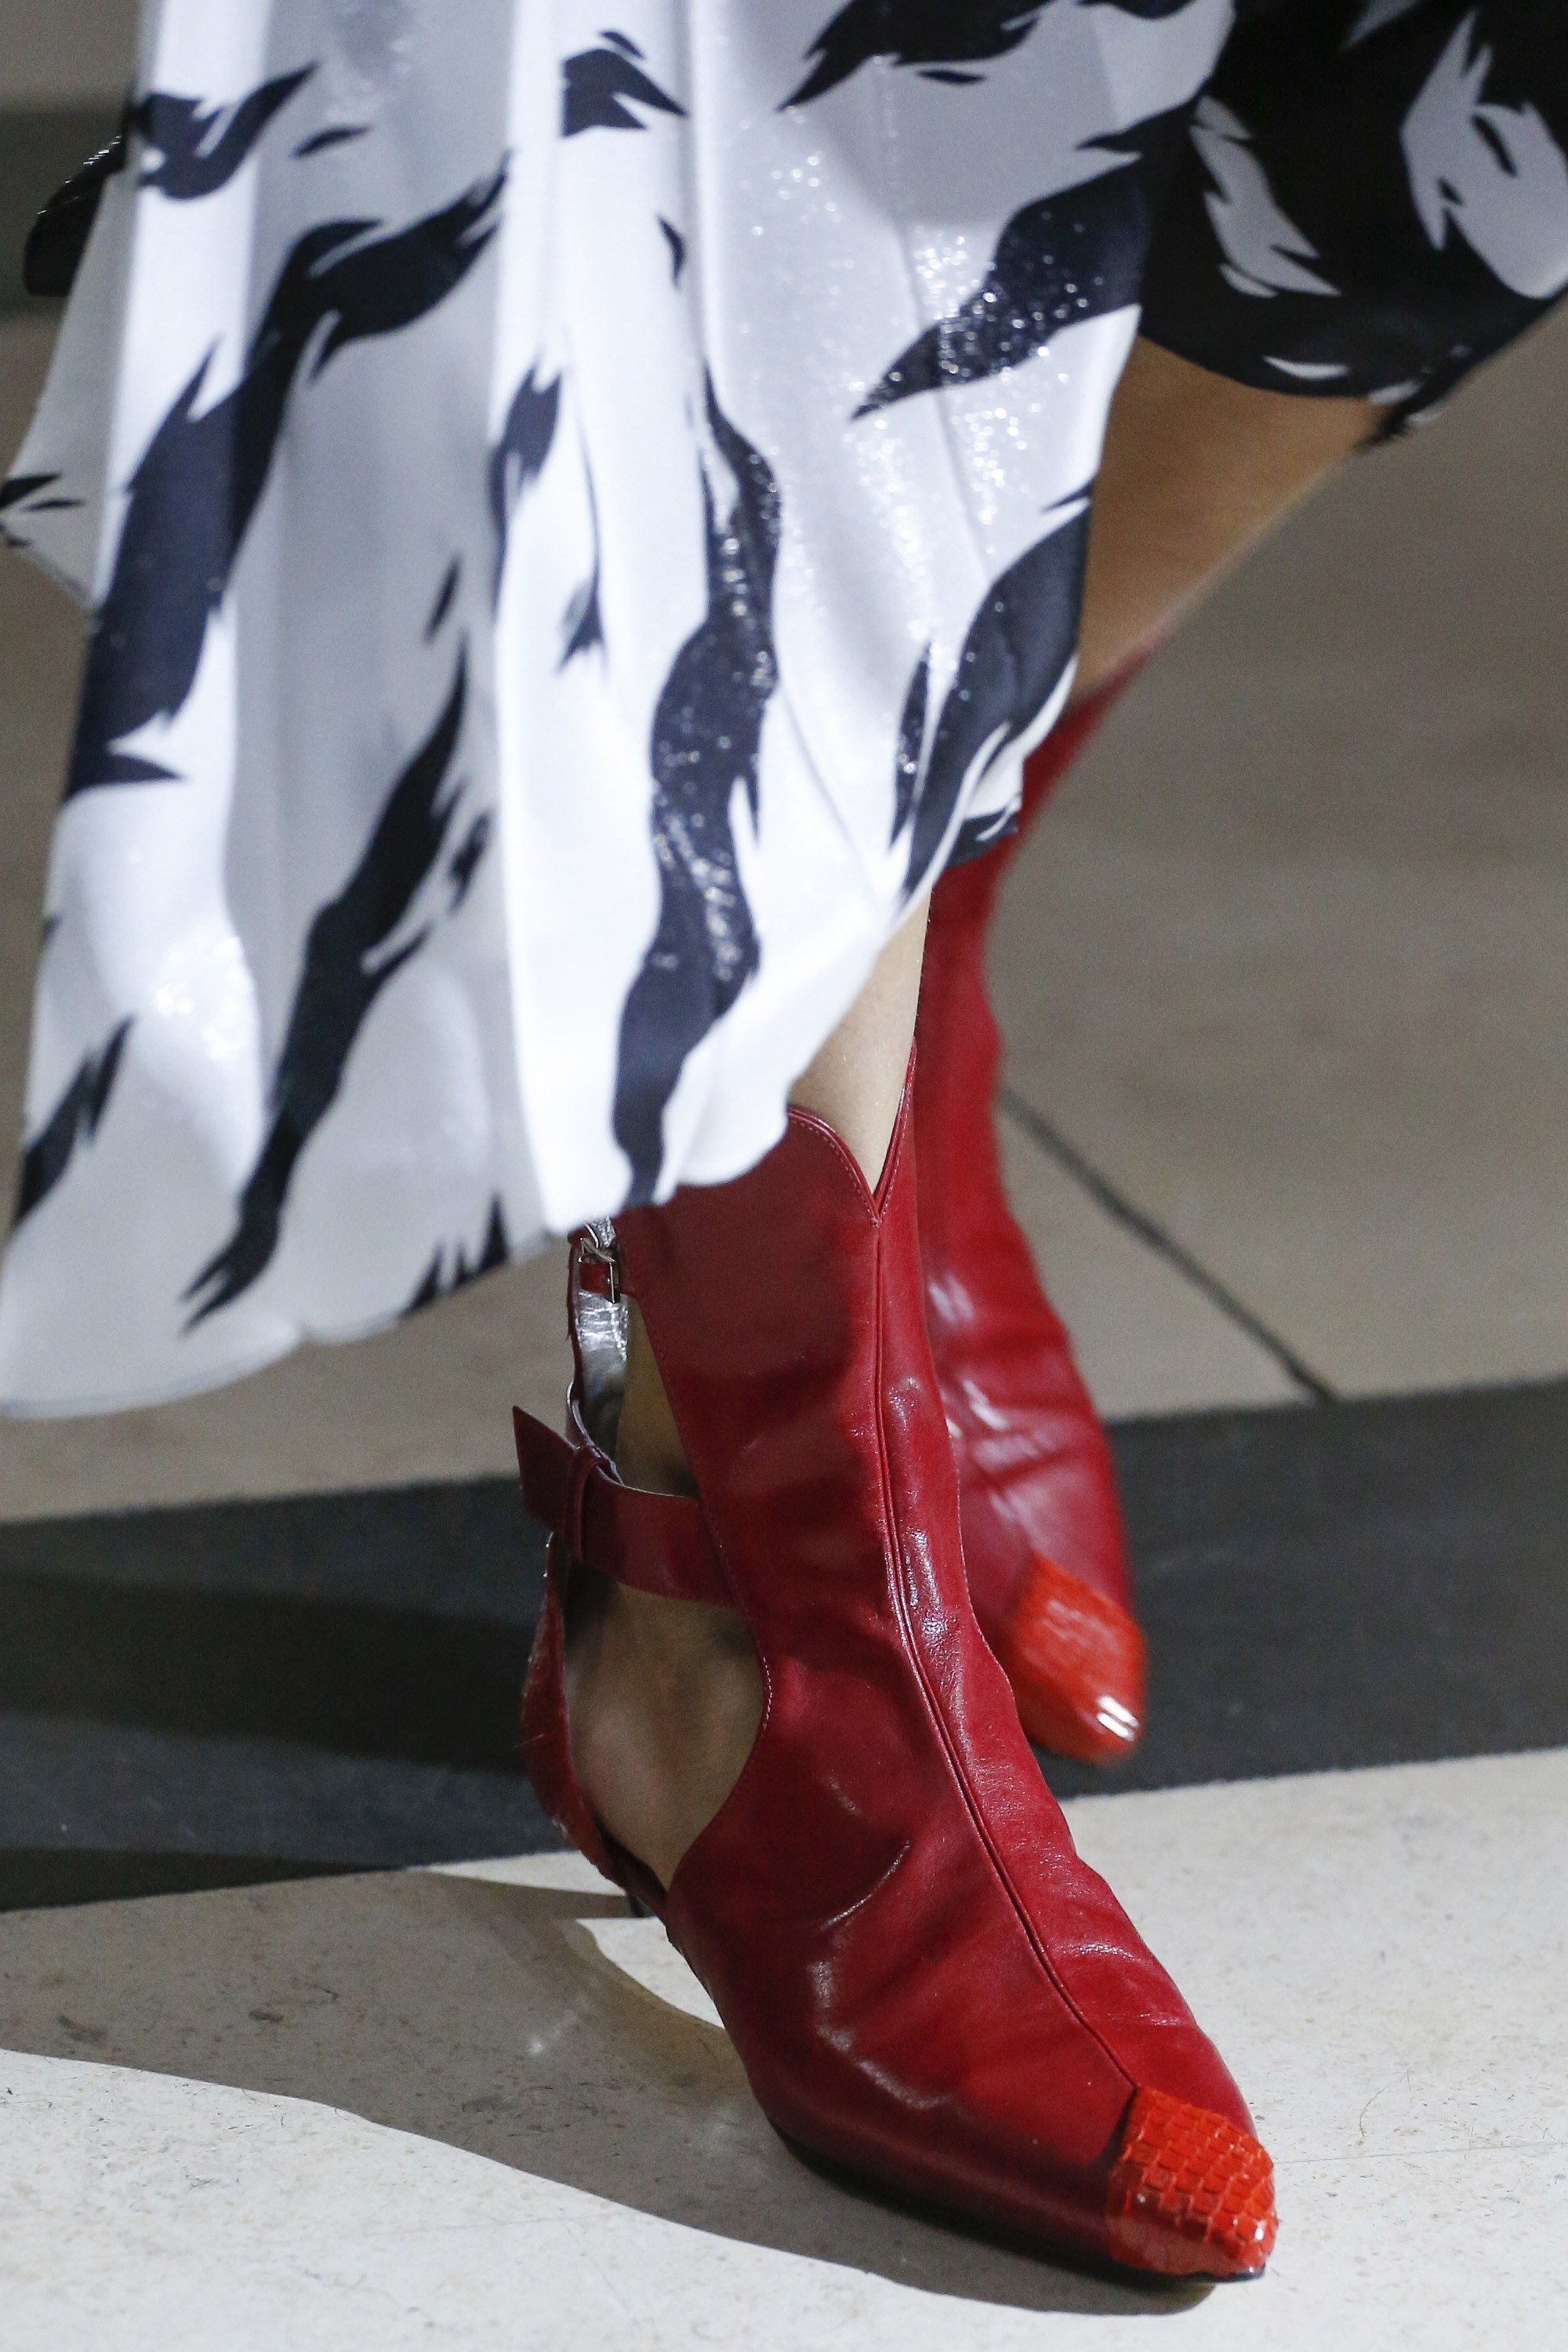 Givenchy Spring 2018 Ready-to-Wear Collection Photos - Vogue 552a1507b93ab